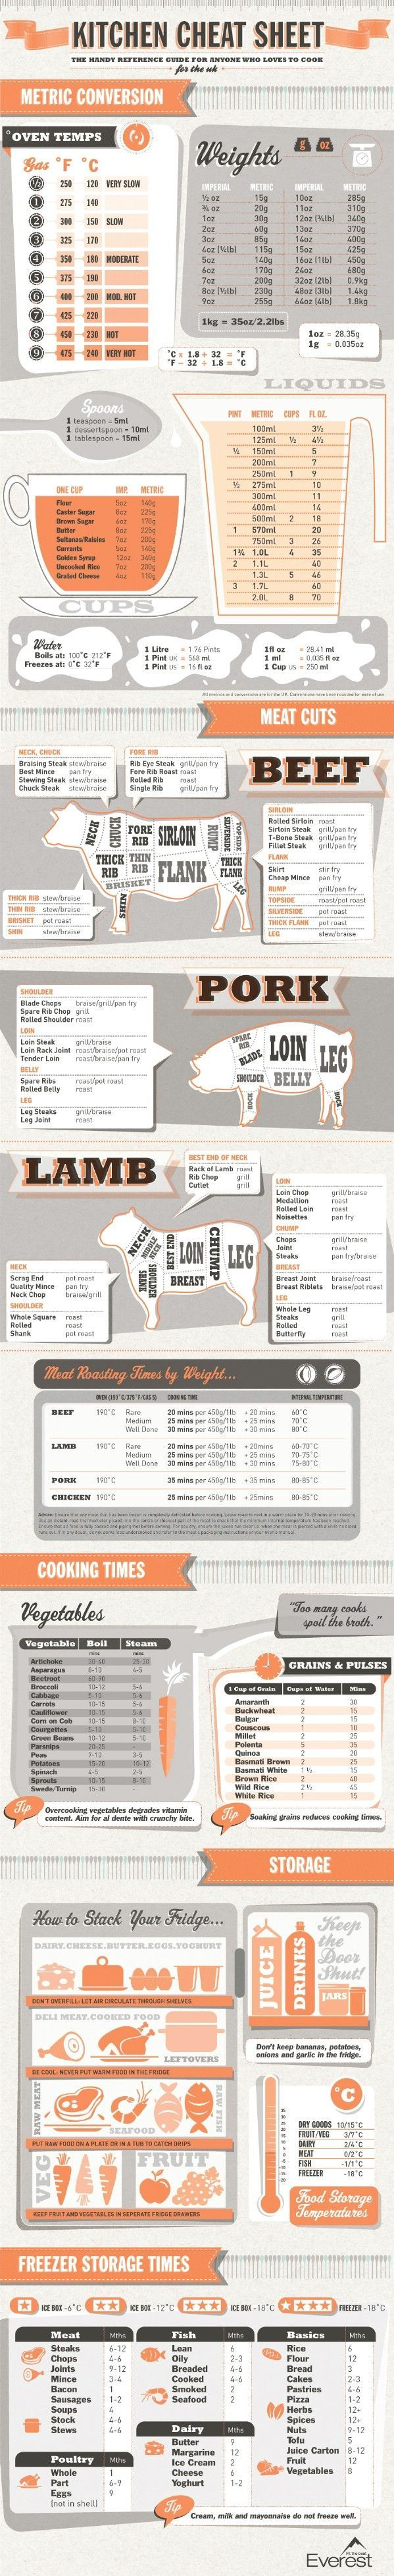 18 Professional Kitchen Infographics to Make Cooking Easier and Faster. The Kitchen Cheat Sheet